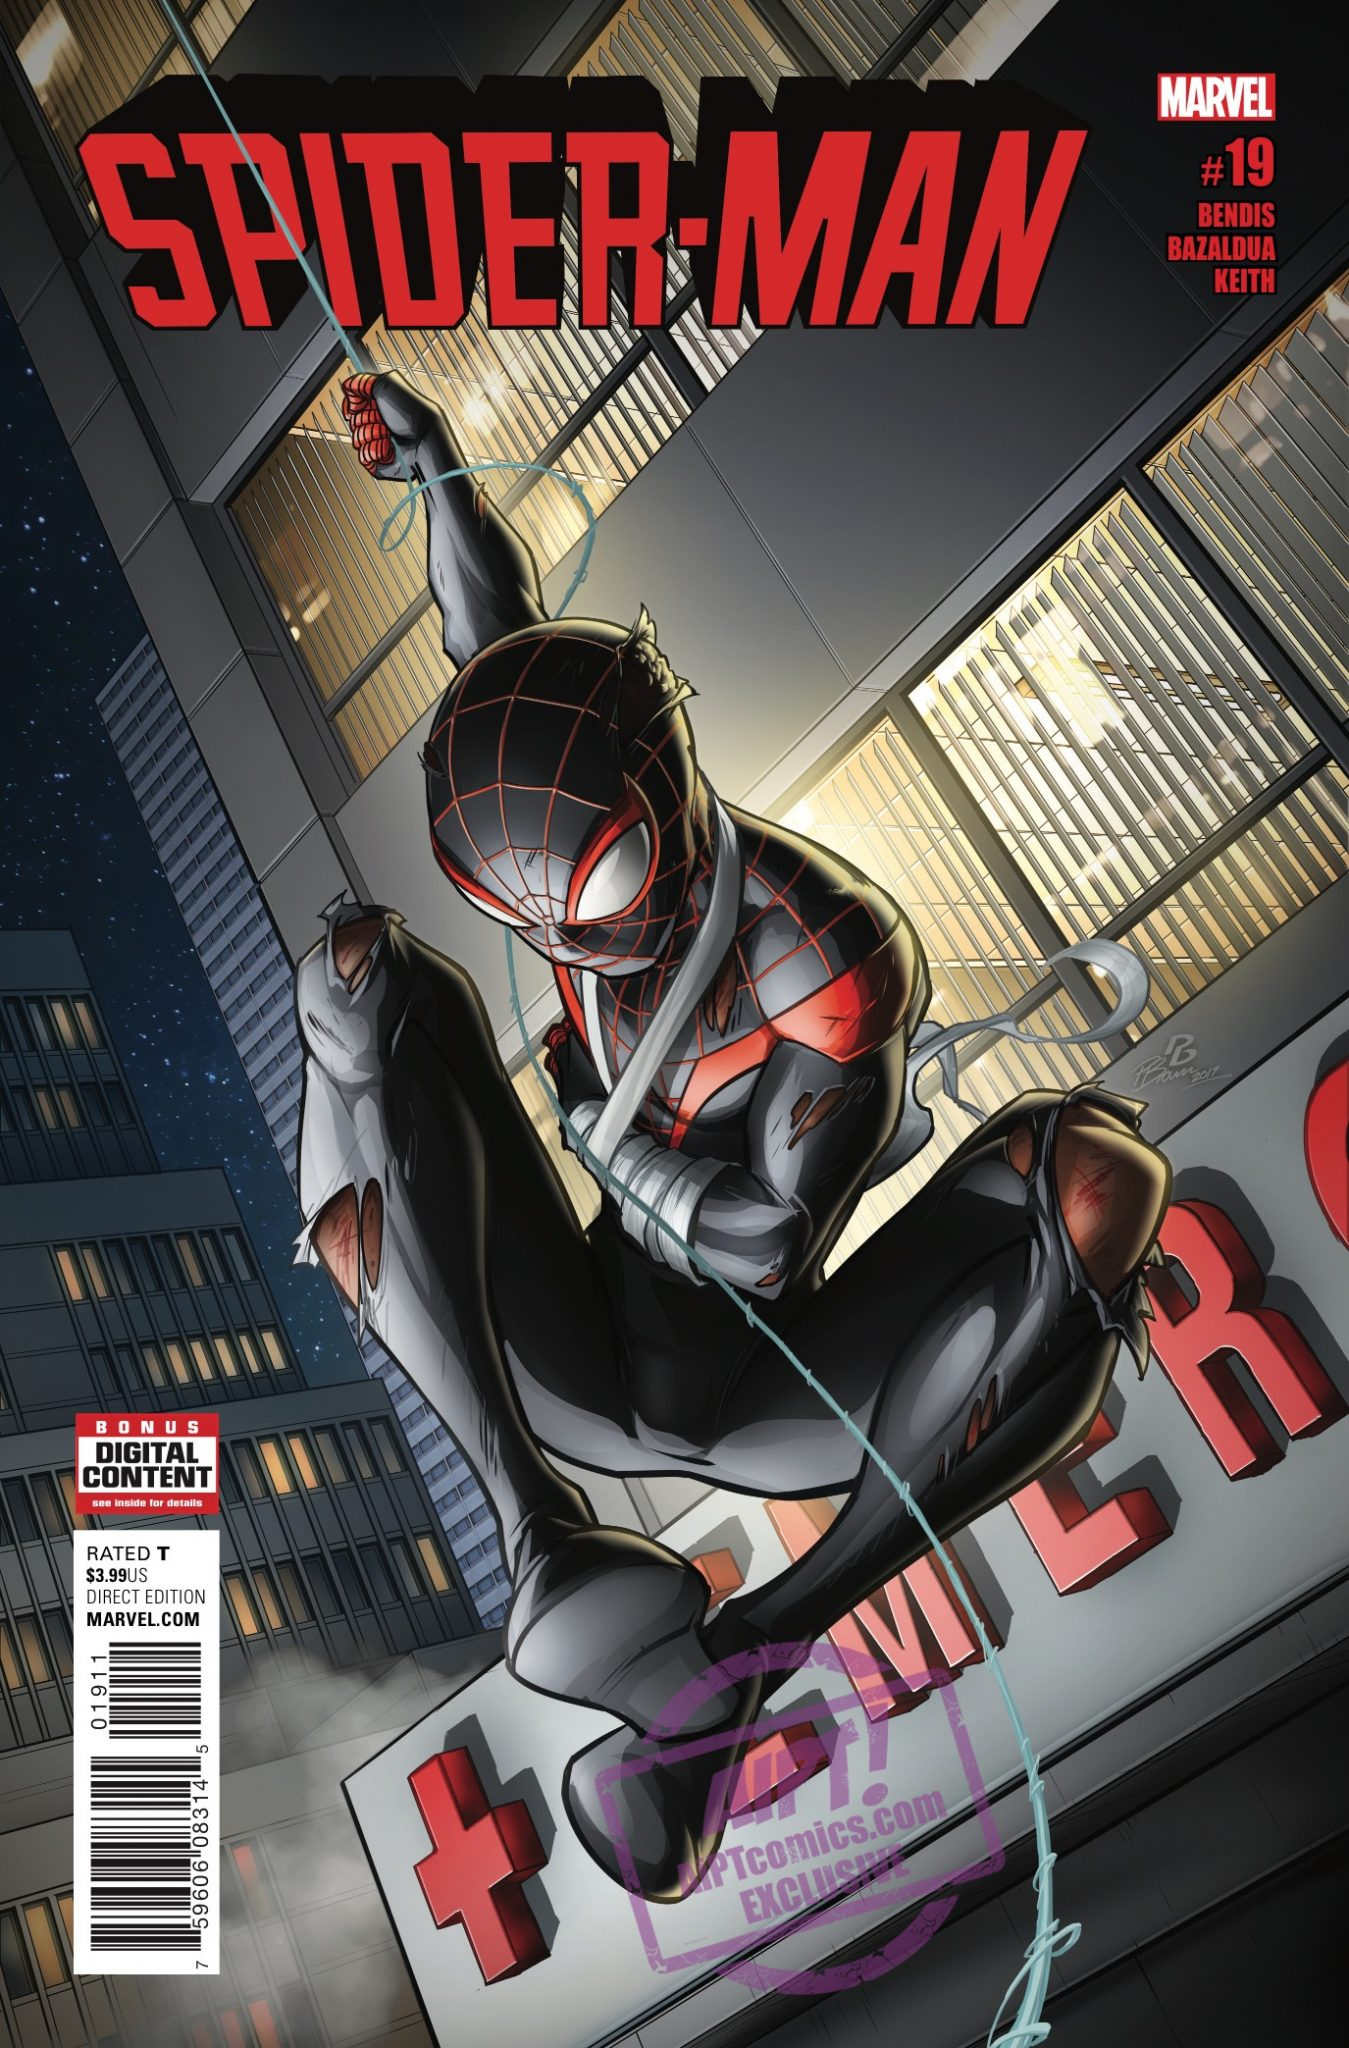 Can Miles defeat his inner demons?  And what would Ganke look like as a superhero?  We find out in Spider-Man #19.